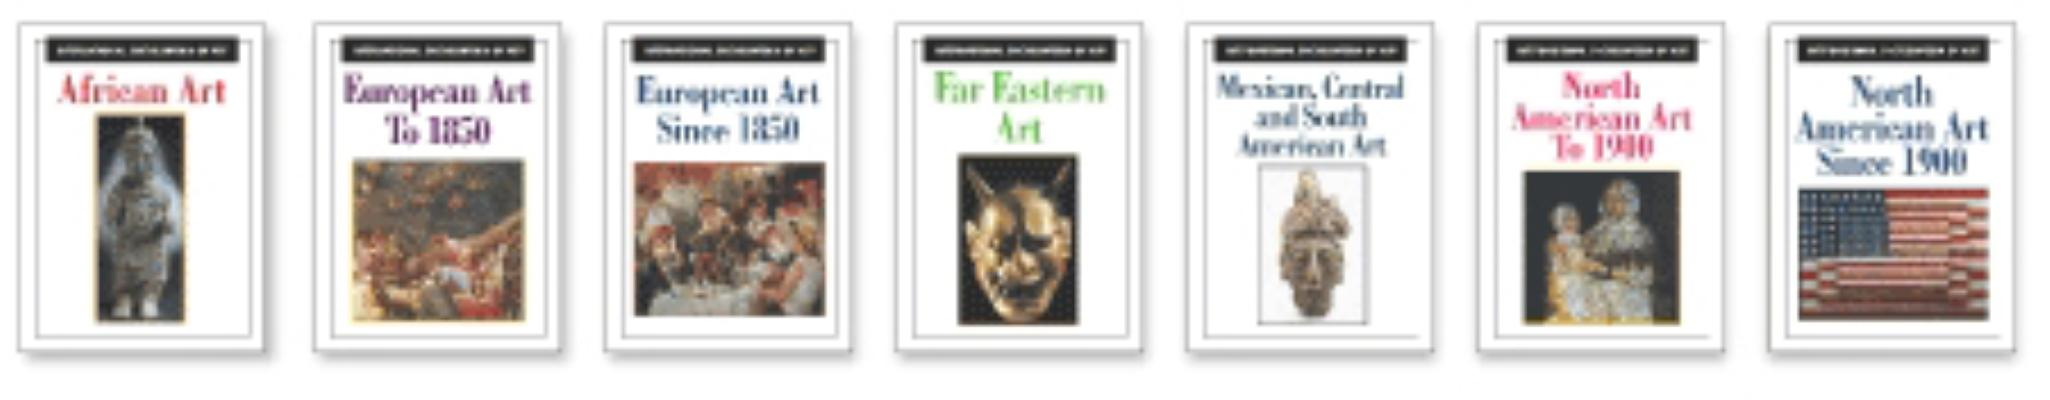 Image for International Encyclopedia of Art (8 volume set)